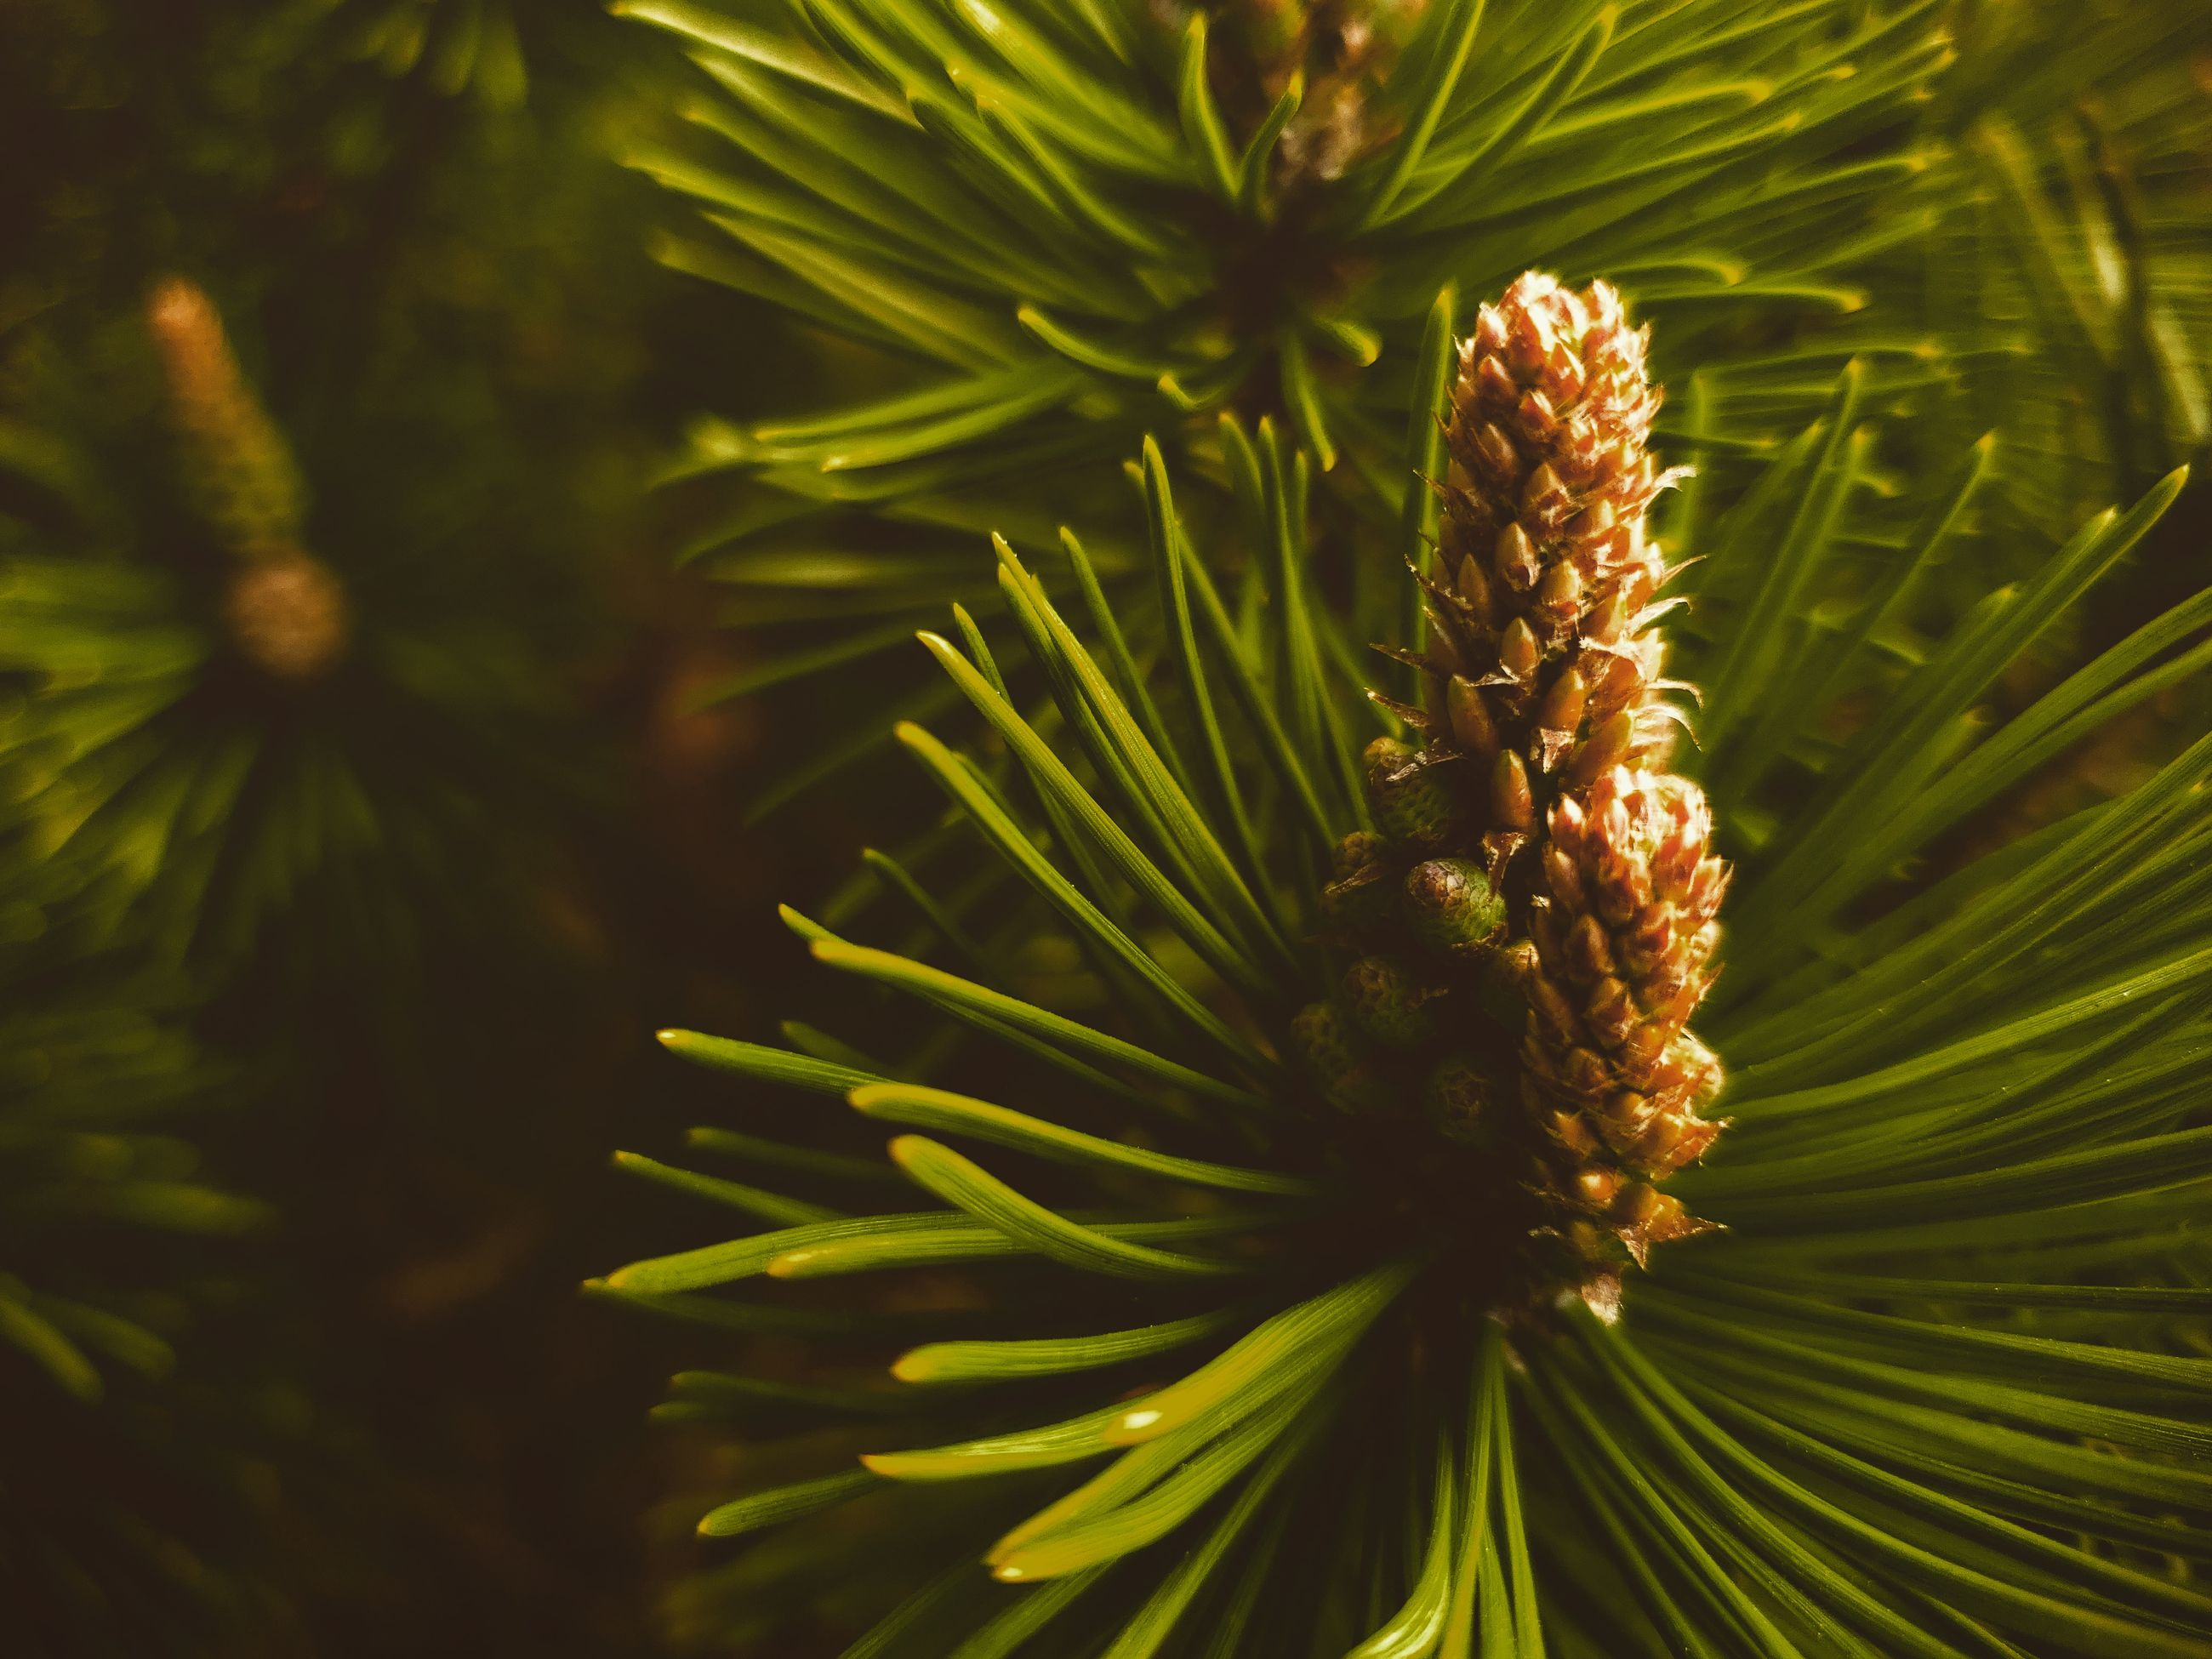 growth, plant, close-up, green color, no people, beauty in nature, nature, day, pine tree, coniferous tree, focus on foreground, needle - plant part, selective focus, outdoors, tree, pinaceae, pine cone, freshness, tranquility, fragility